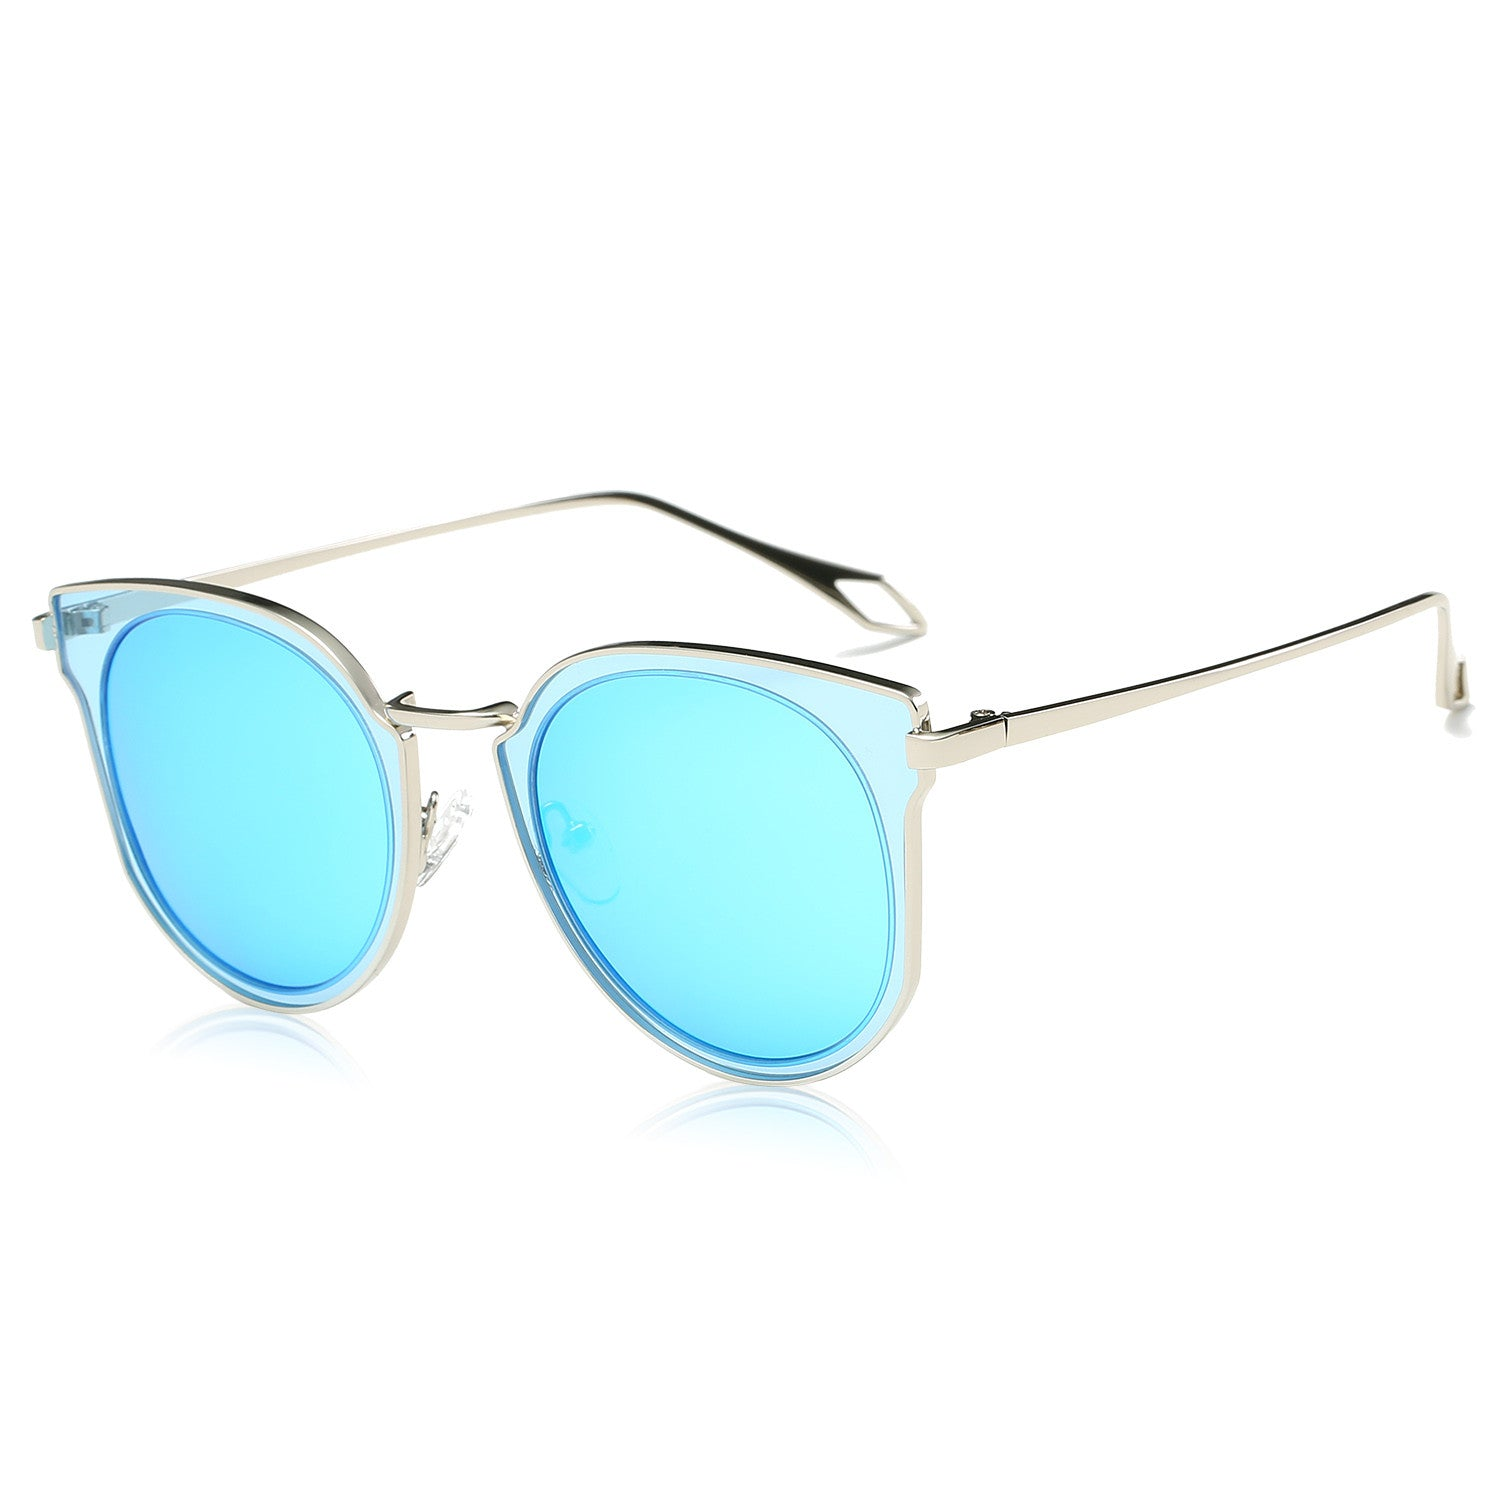 Fashion Polarized Sunglasses UV Mirrored Lens Oversize Metal Frame SJ1057, , 188 Photography, 188 Photography - 188 Photography